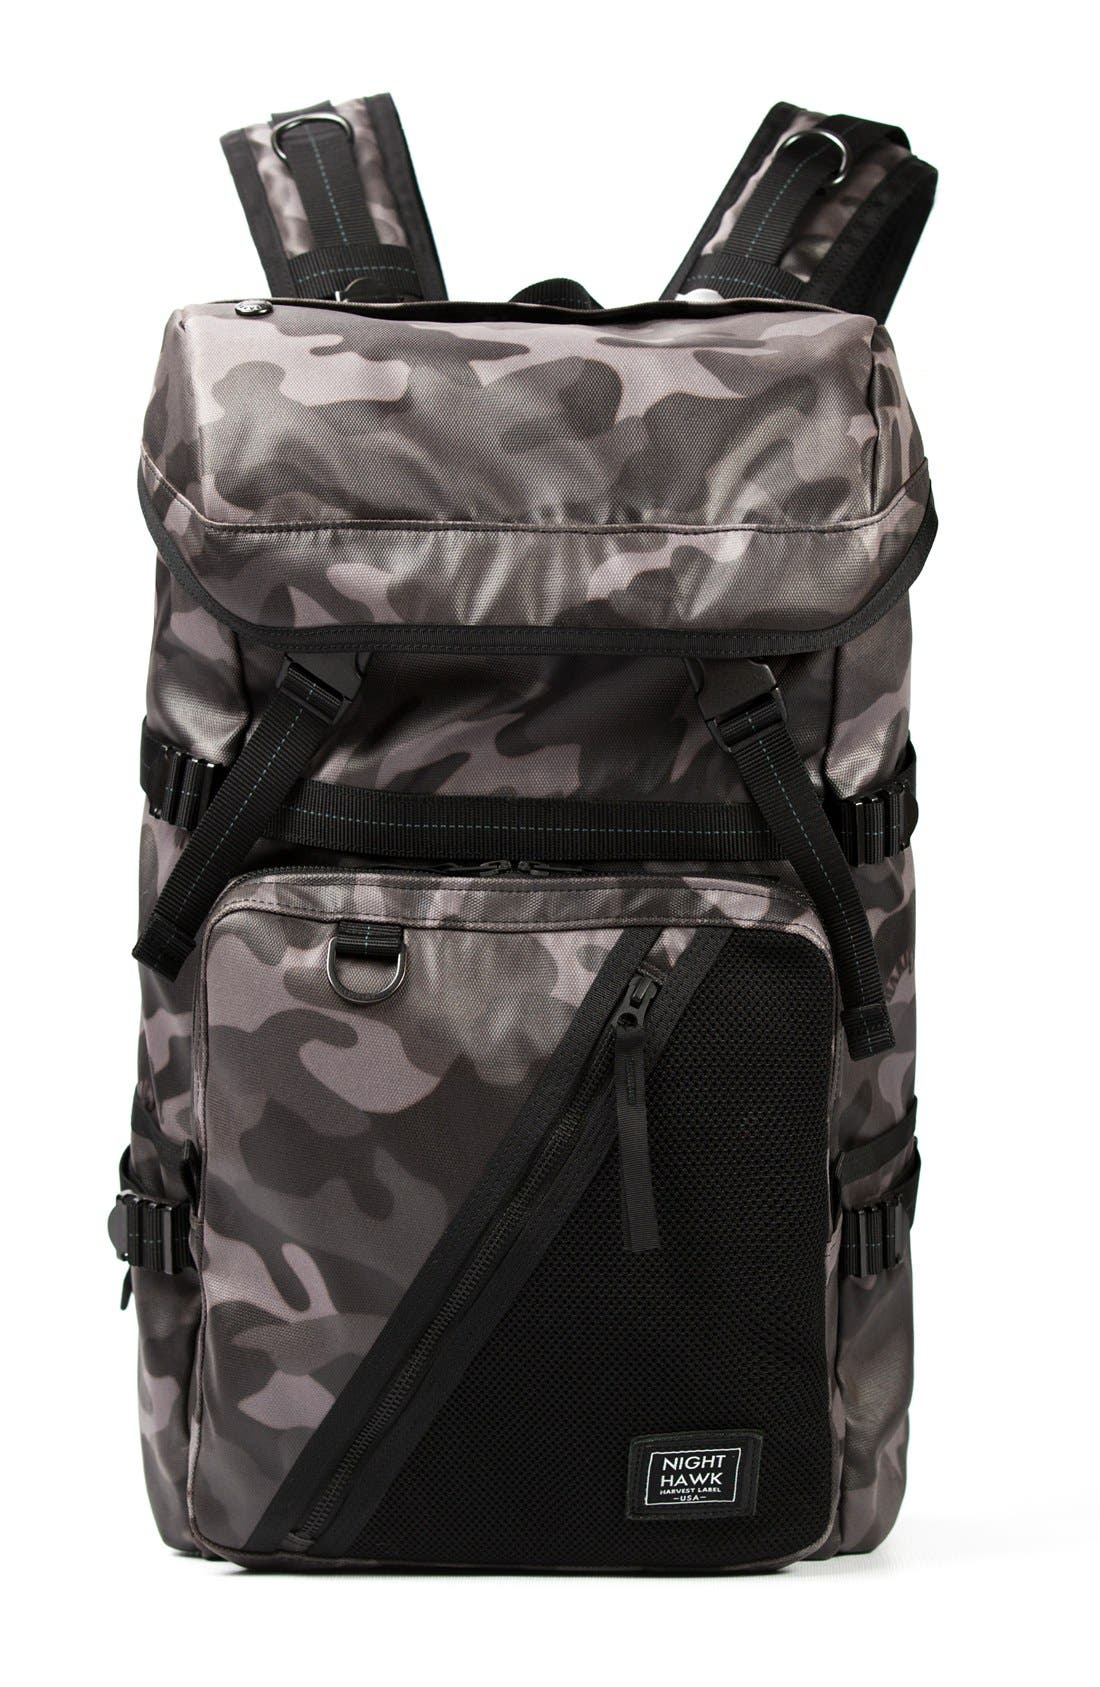 Main Image - Harvest Label 'NightHawk' Backpack